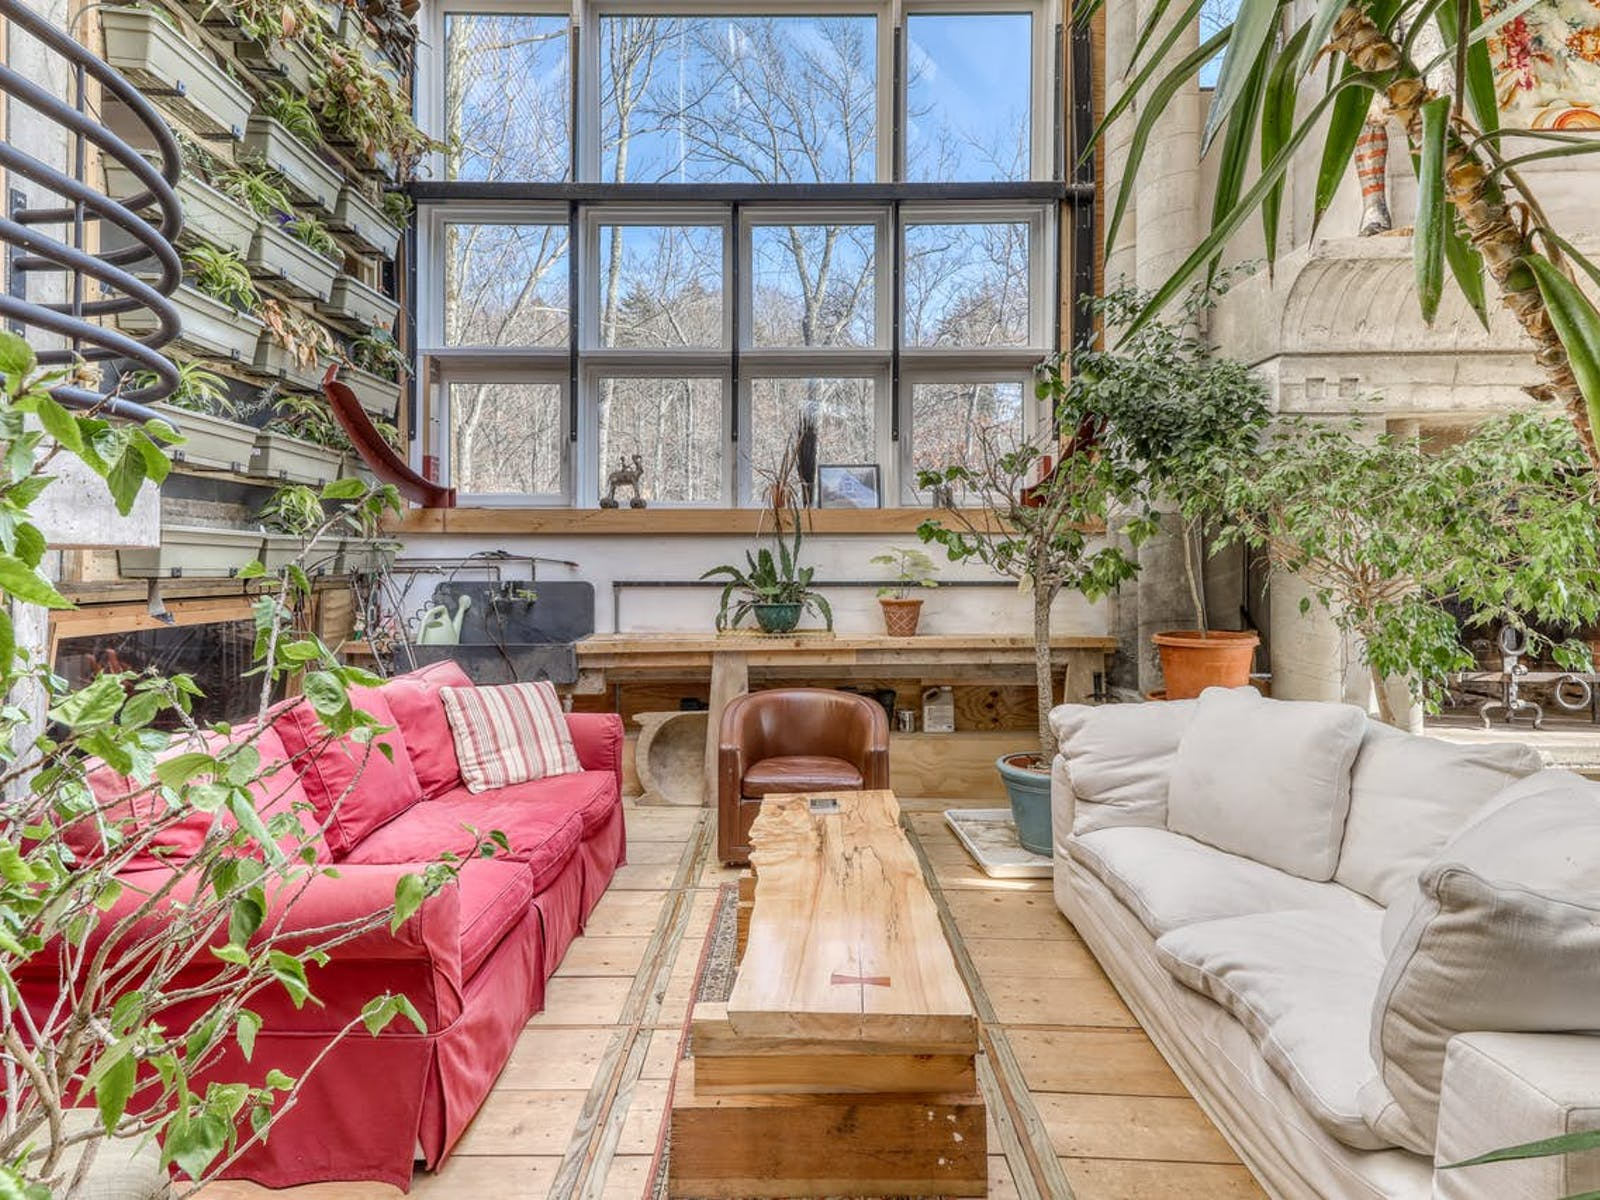 living room filled with live plants and comfy couches in Warren, VT vacation home